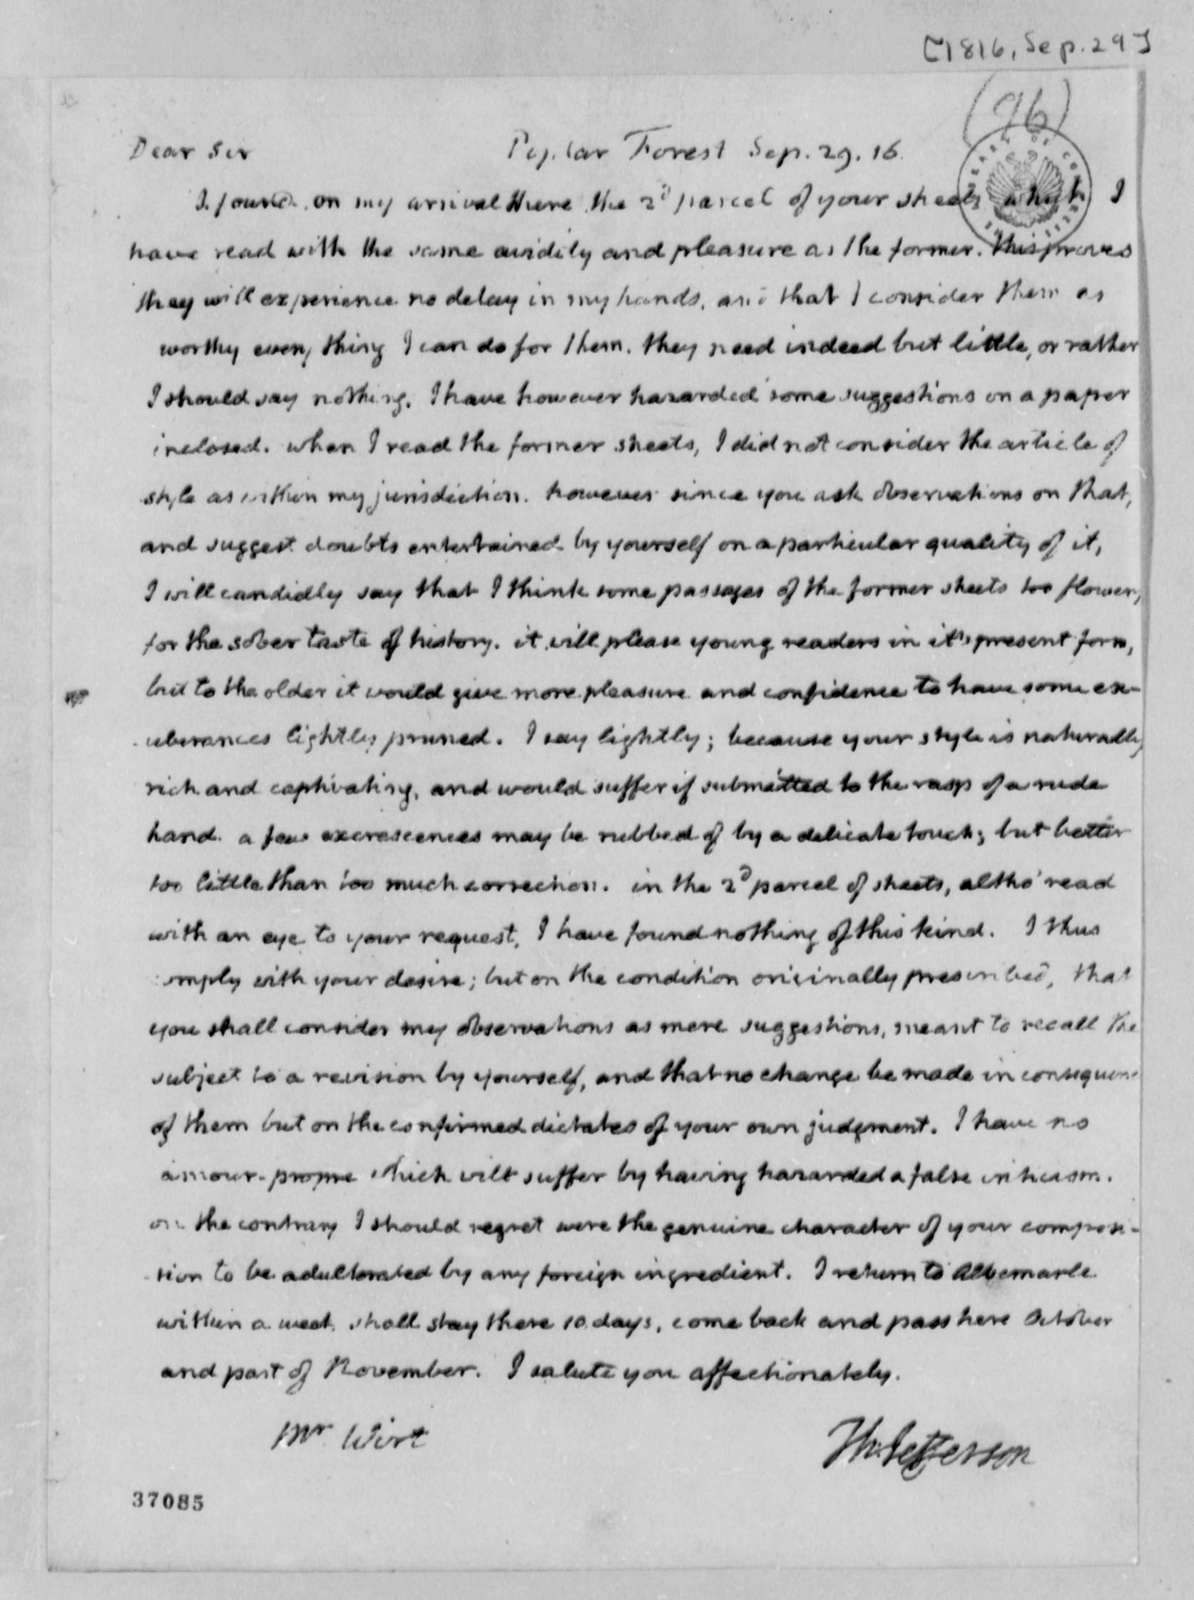 Thomas Jefferson to William Wirt, September 29, 1816, with Comments